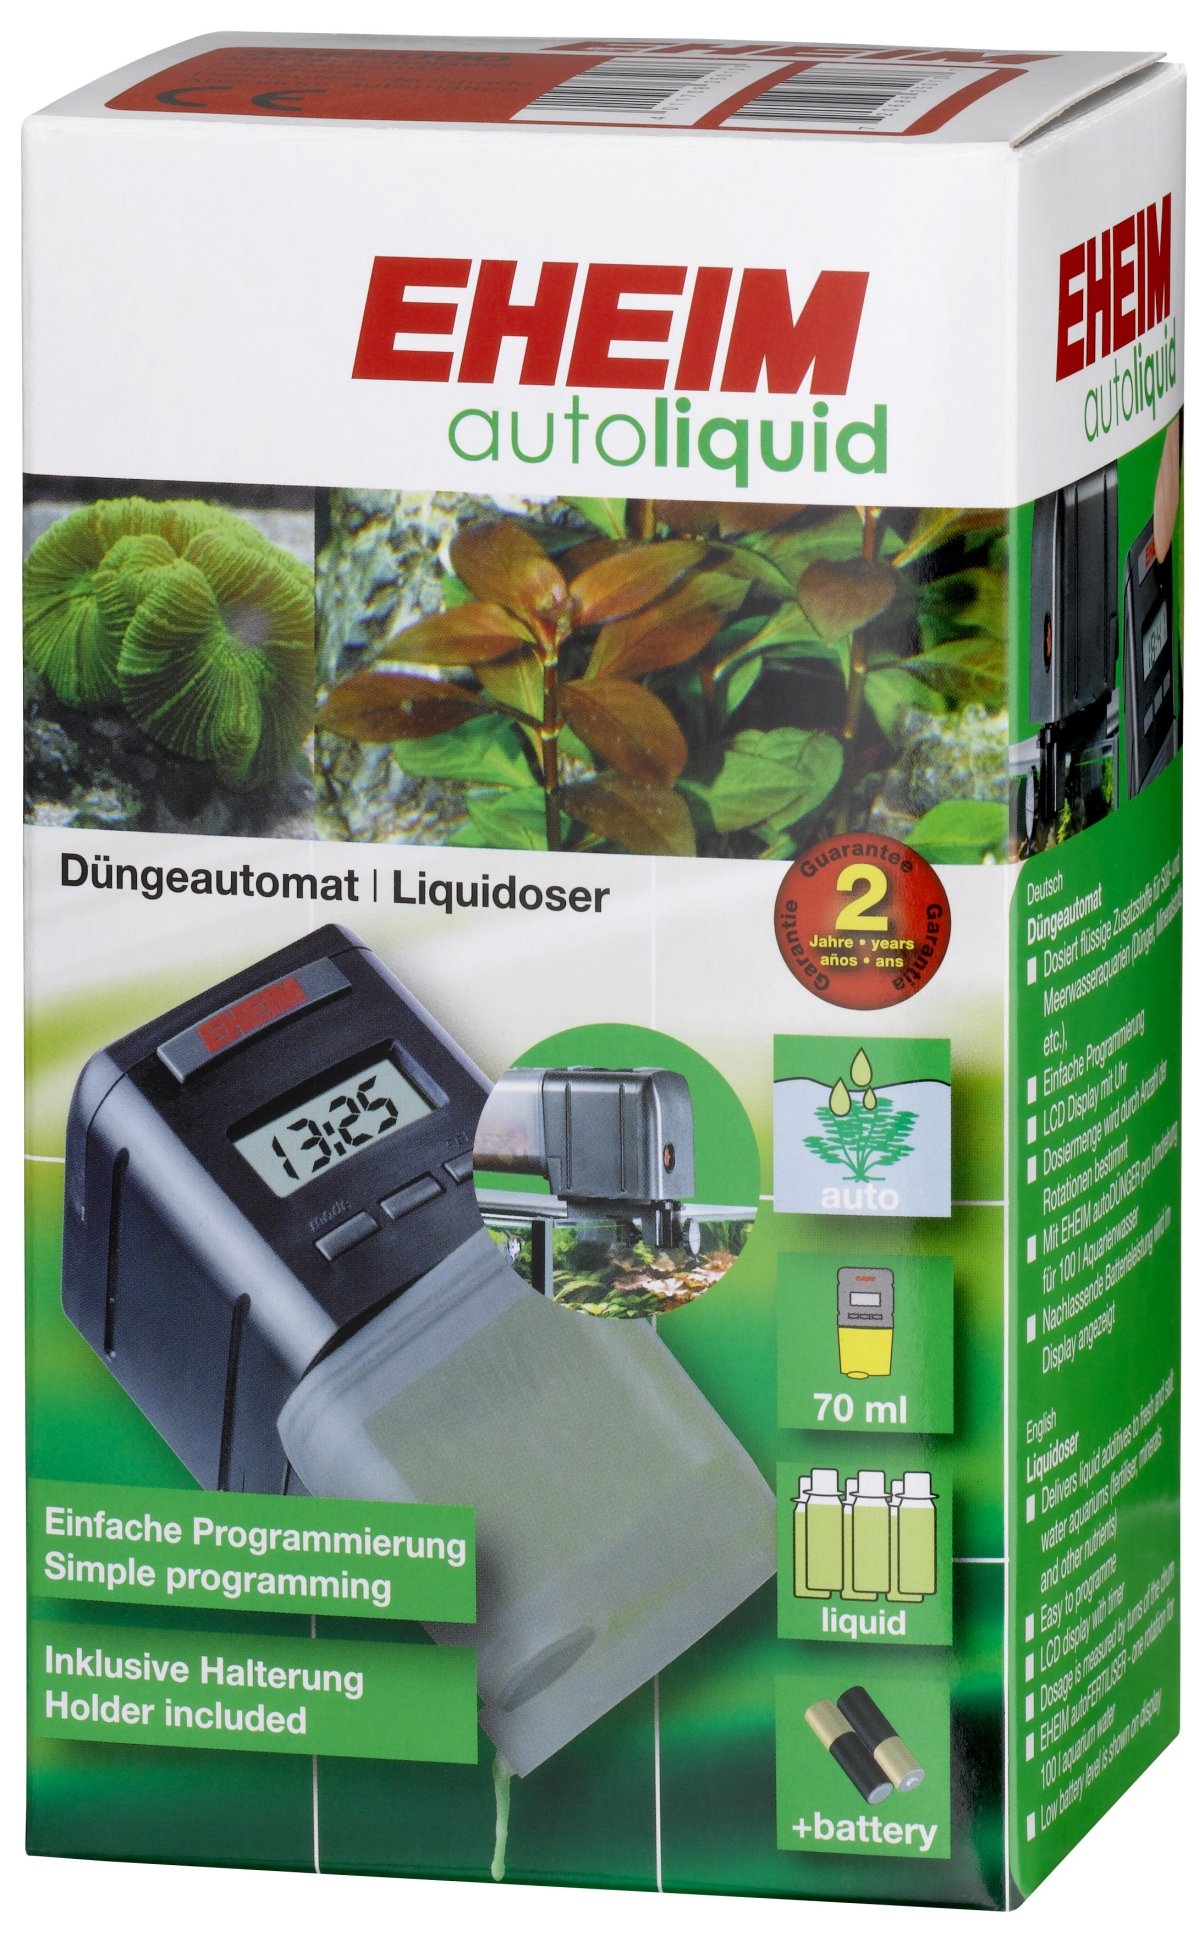 Shop EHEIM Automatic Fertiliser autoliquid